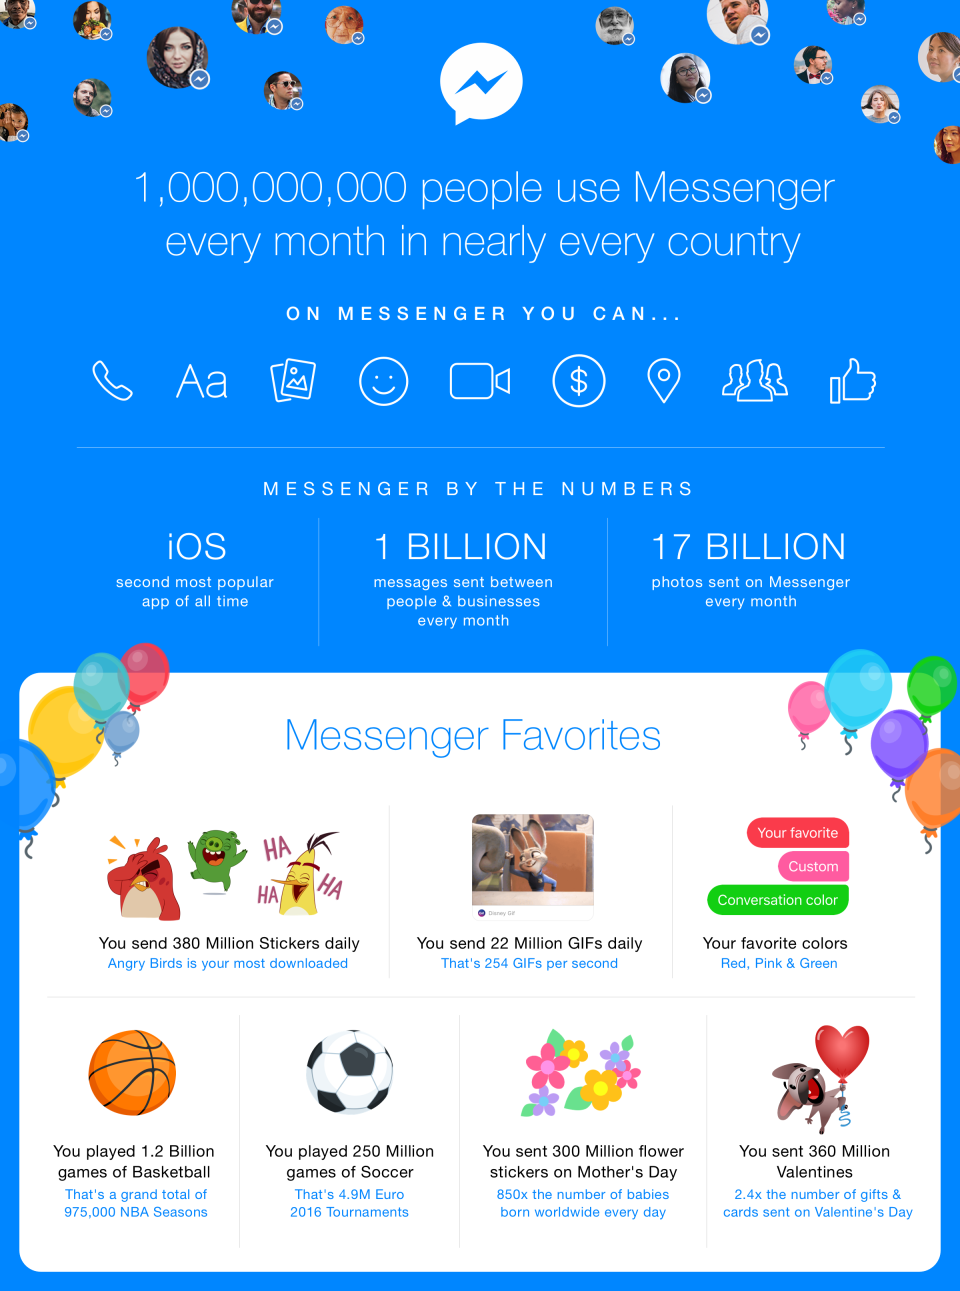 Static Infographic_Messenger by the Numbers